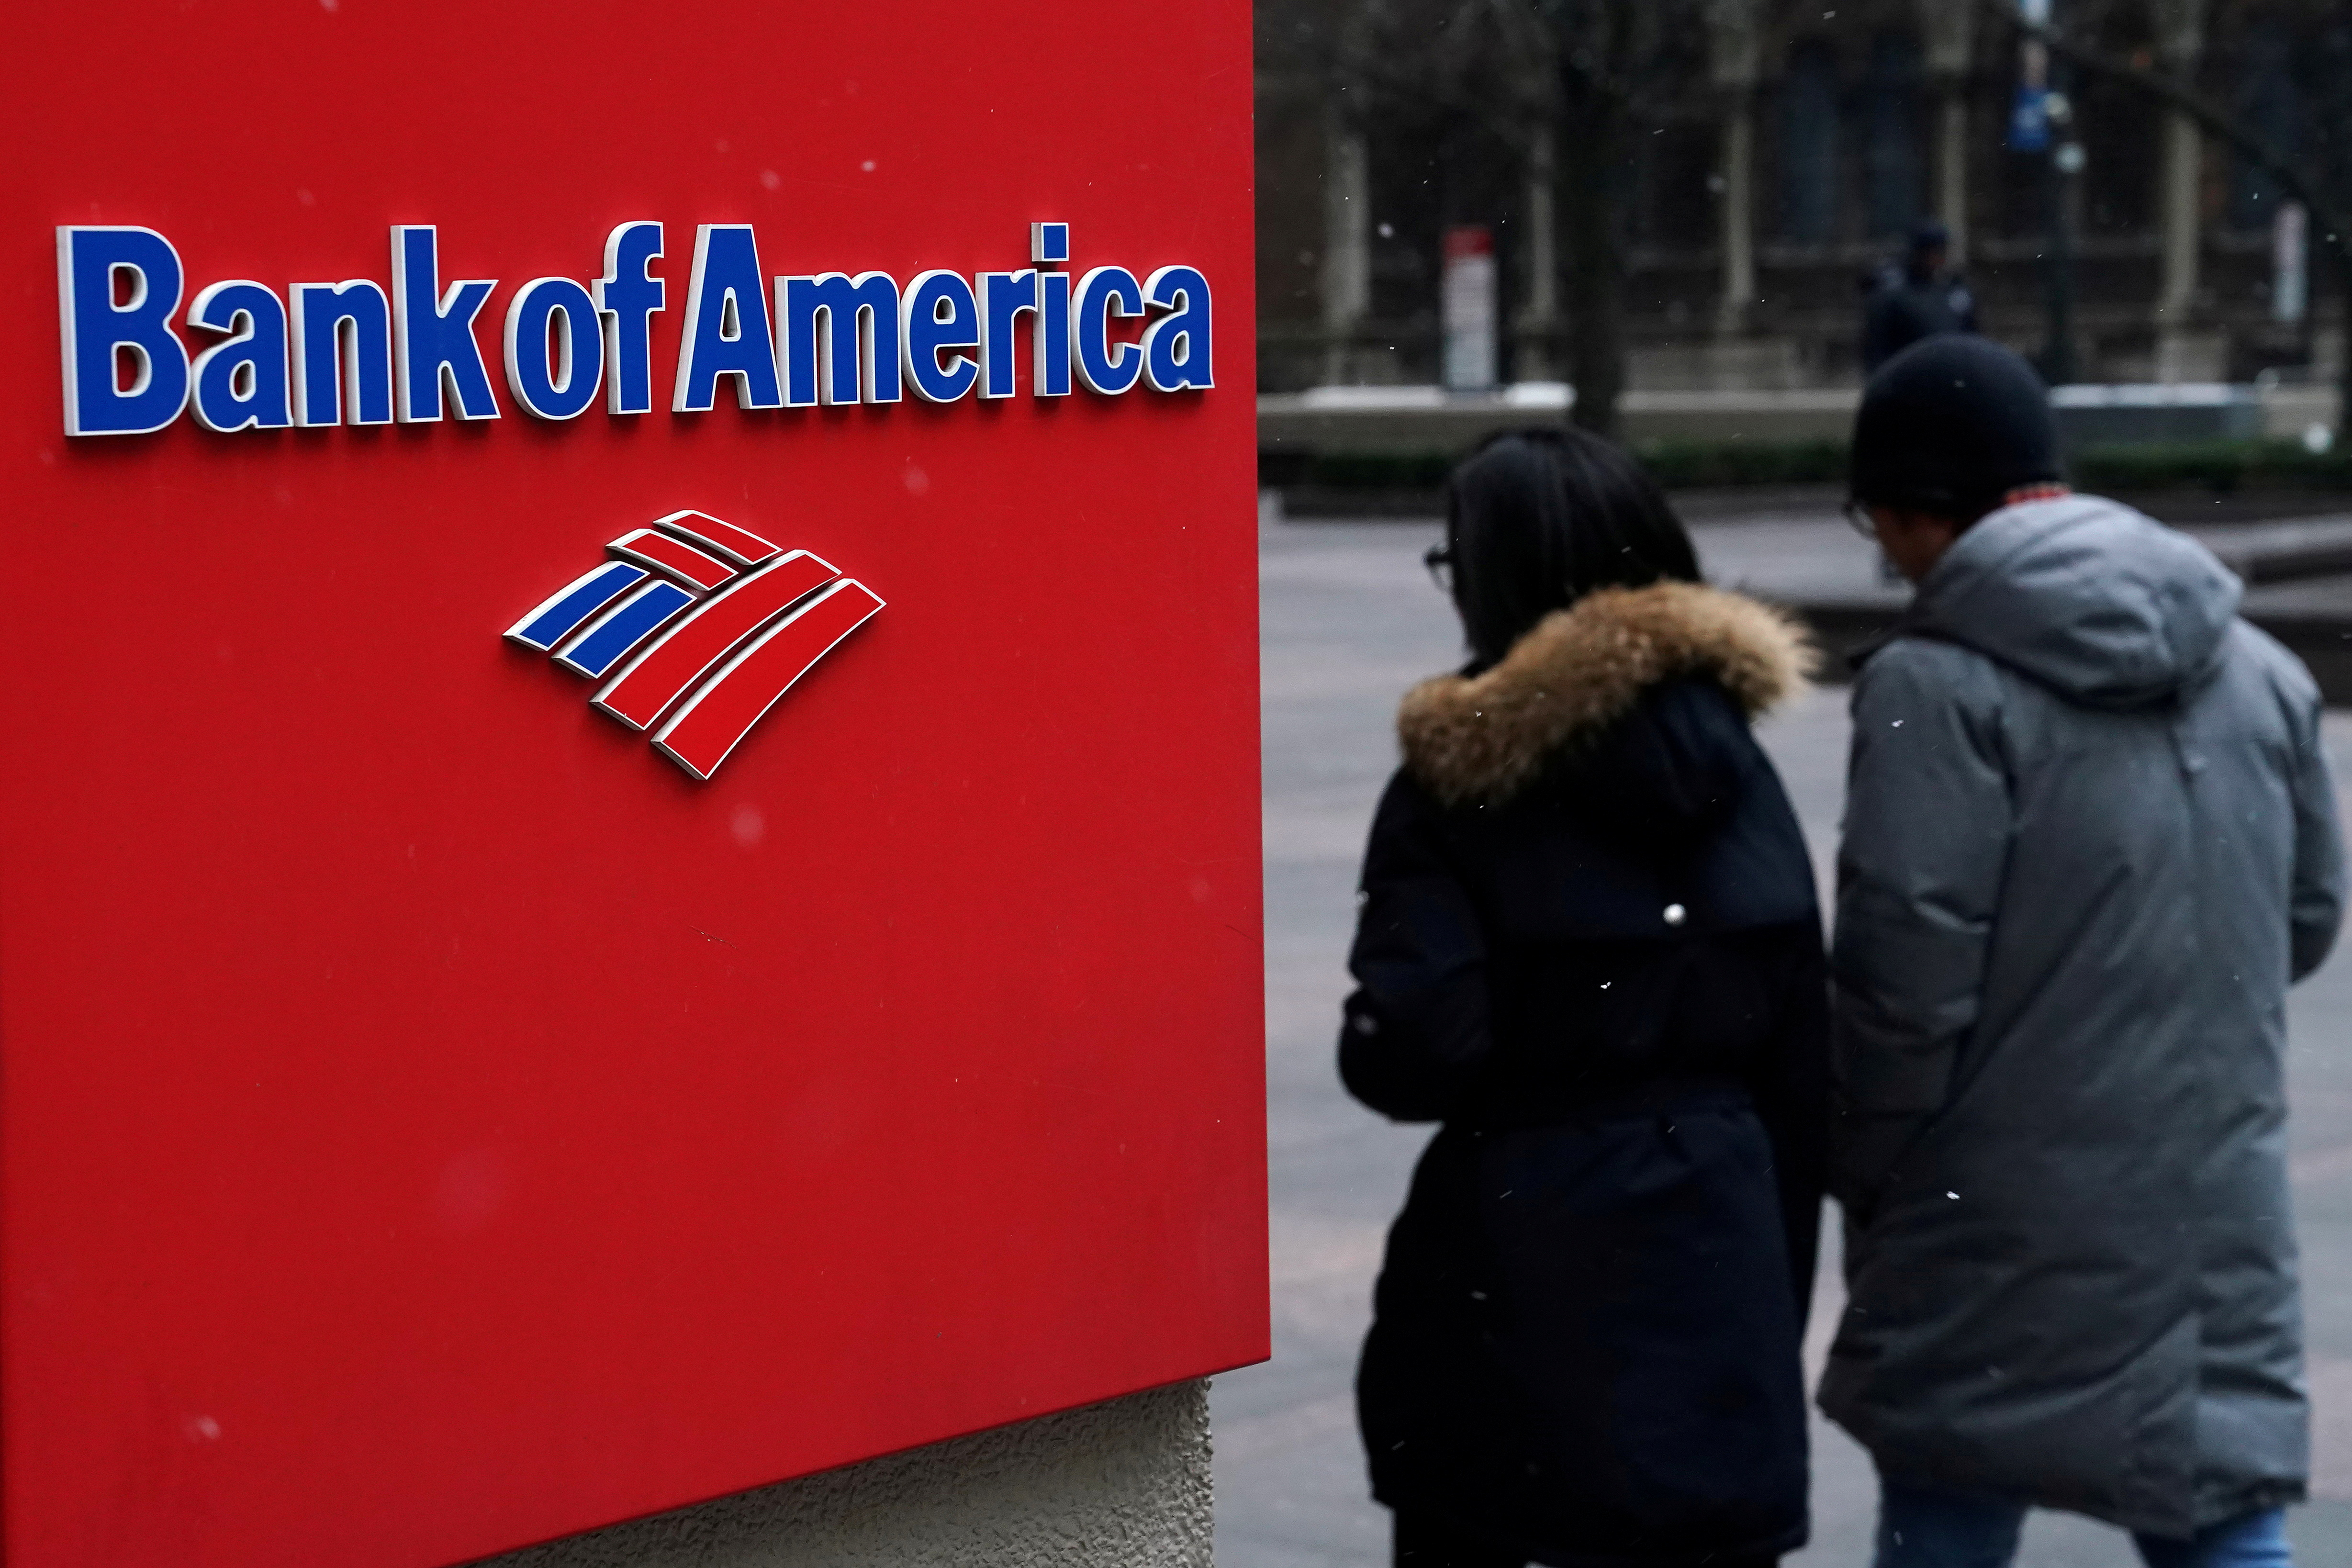 A Bank of America logo is pictured in the Manhattan borough of New York City, New York, U.S., January 30, 2019. REUTERS/Carlo Allegri